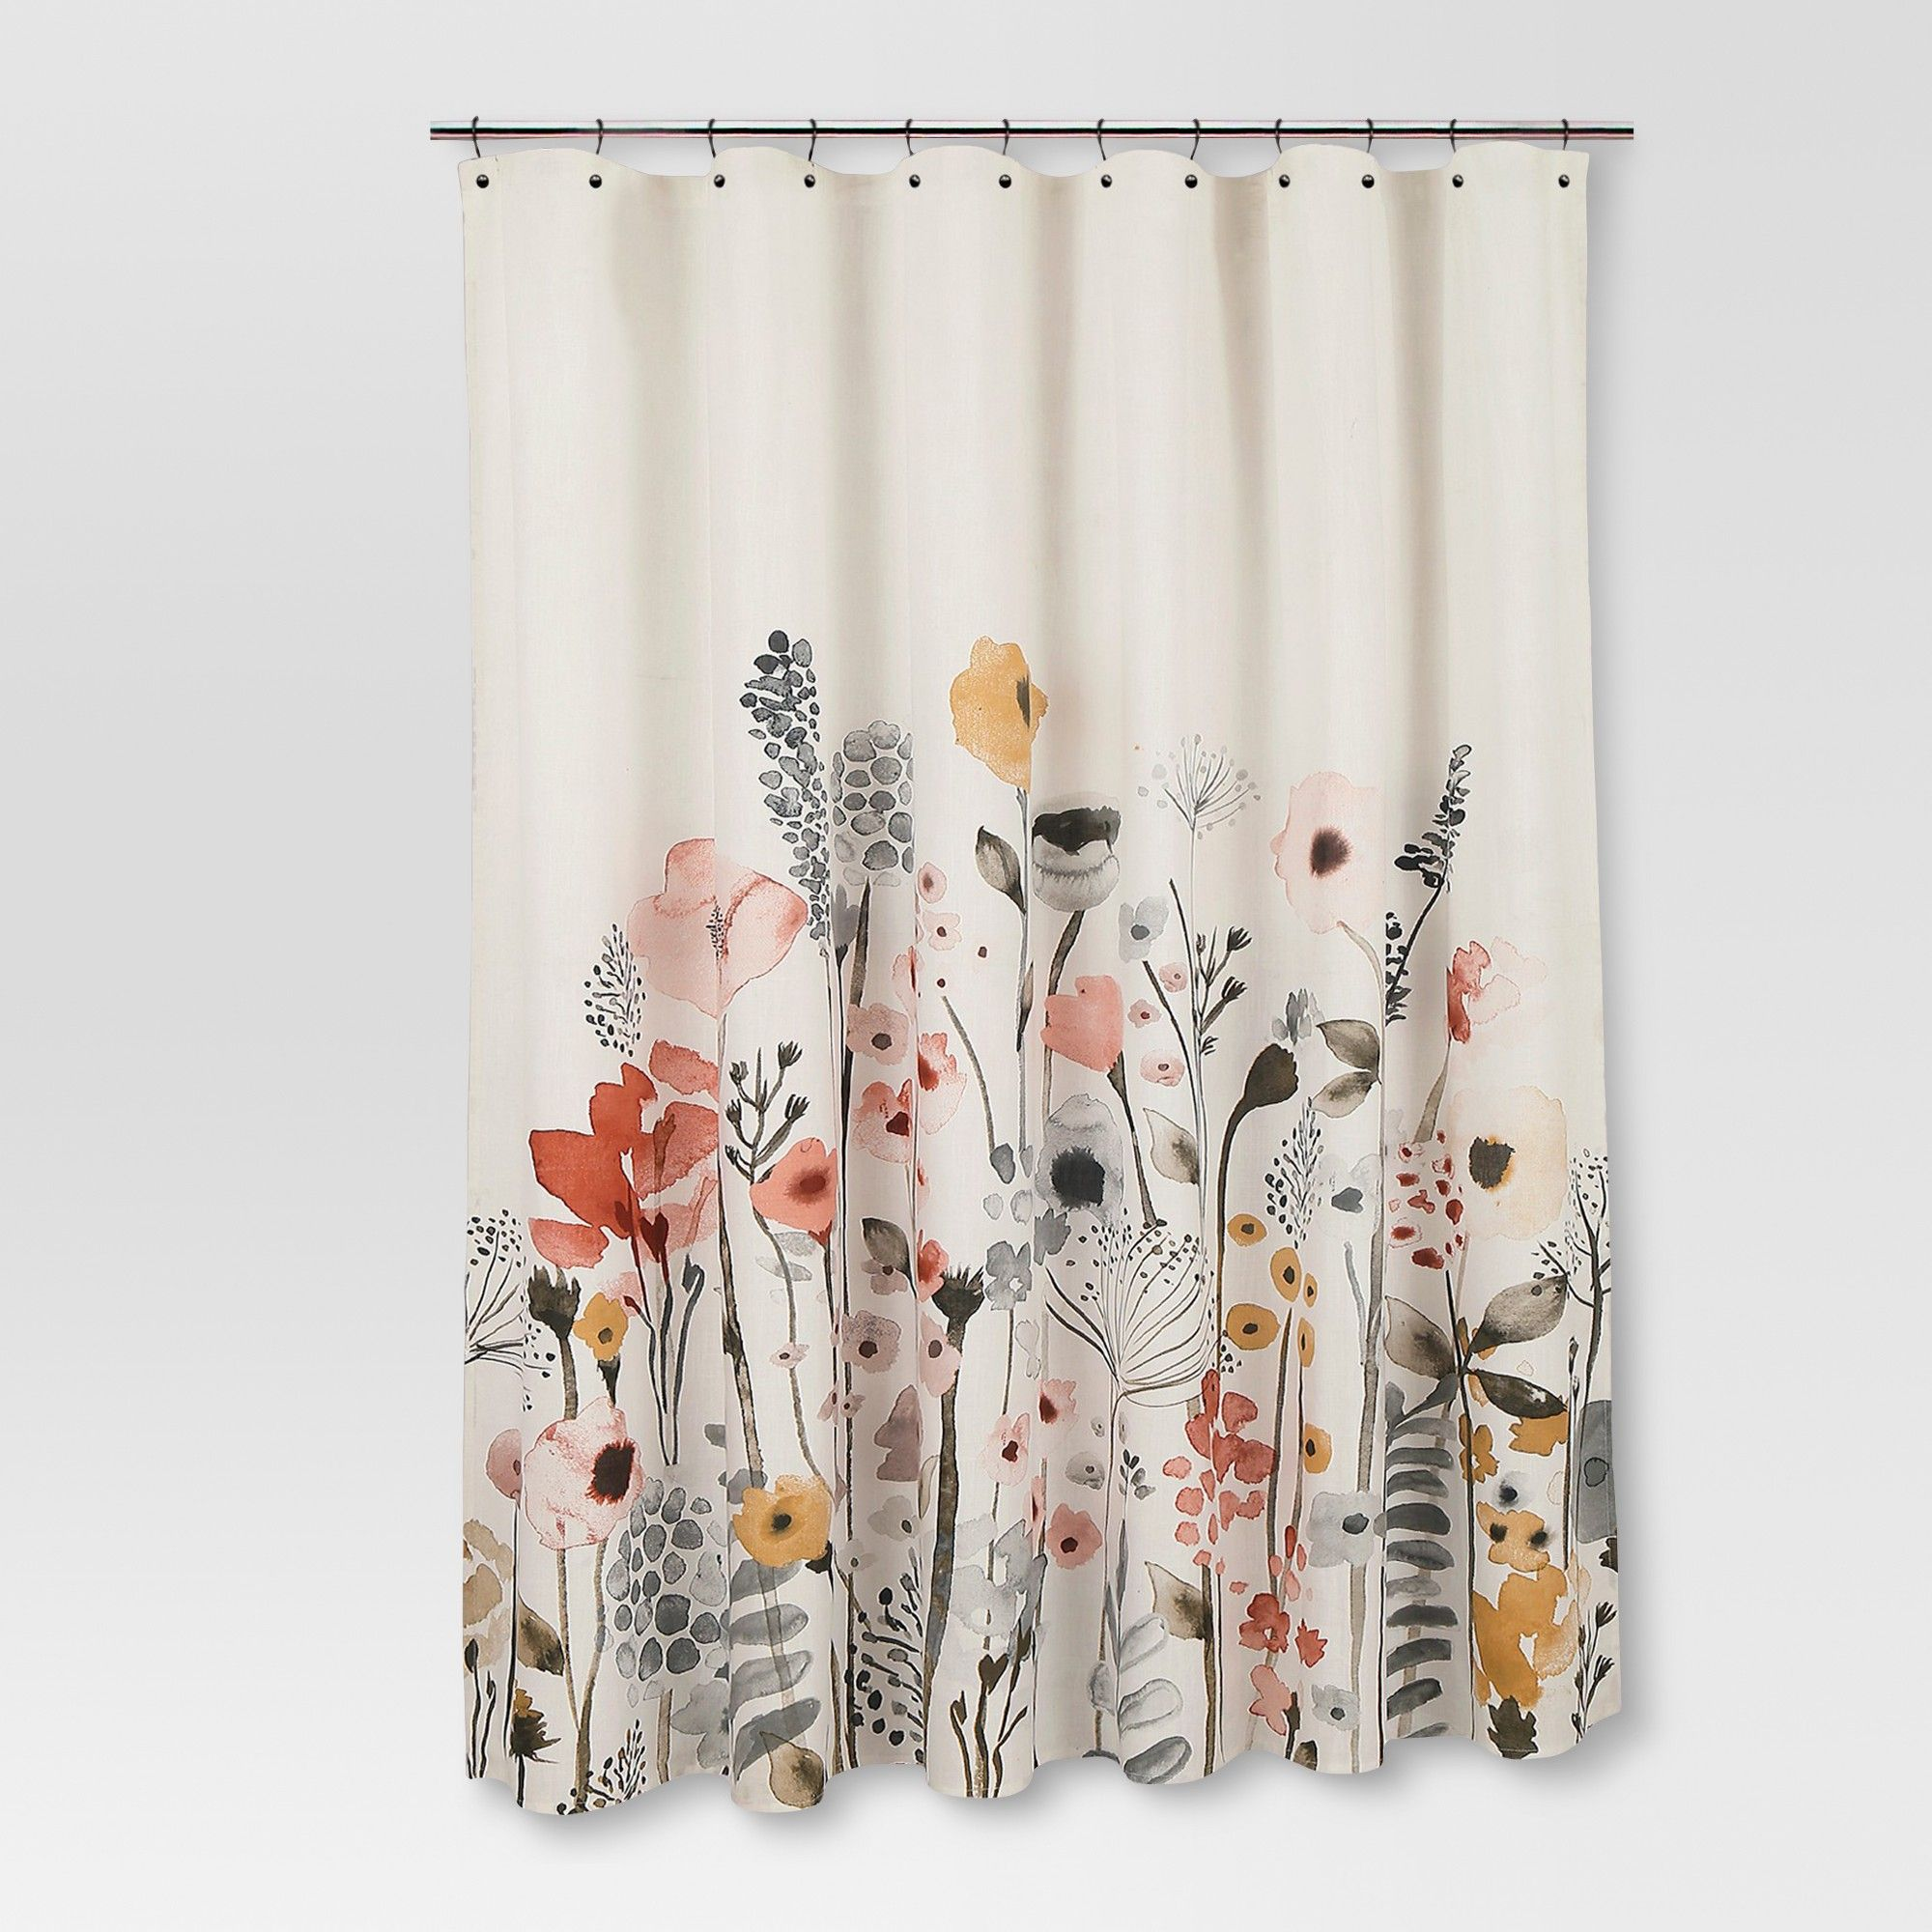 Shower Curtain Floral Wave Threshold Floral Shower Curtains Flower Shower Curtain Red Shower Curtains